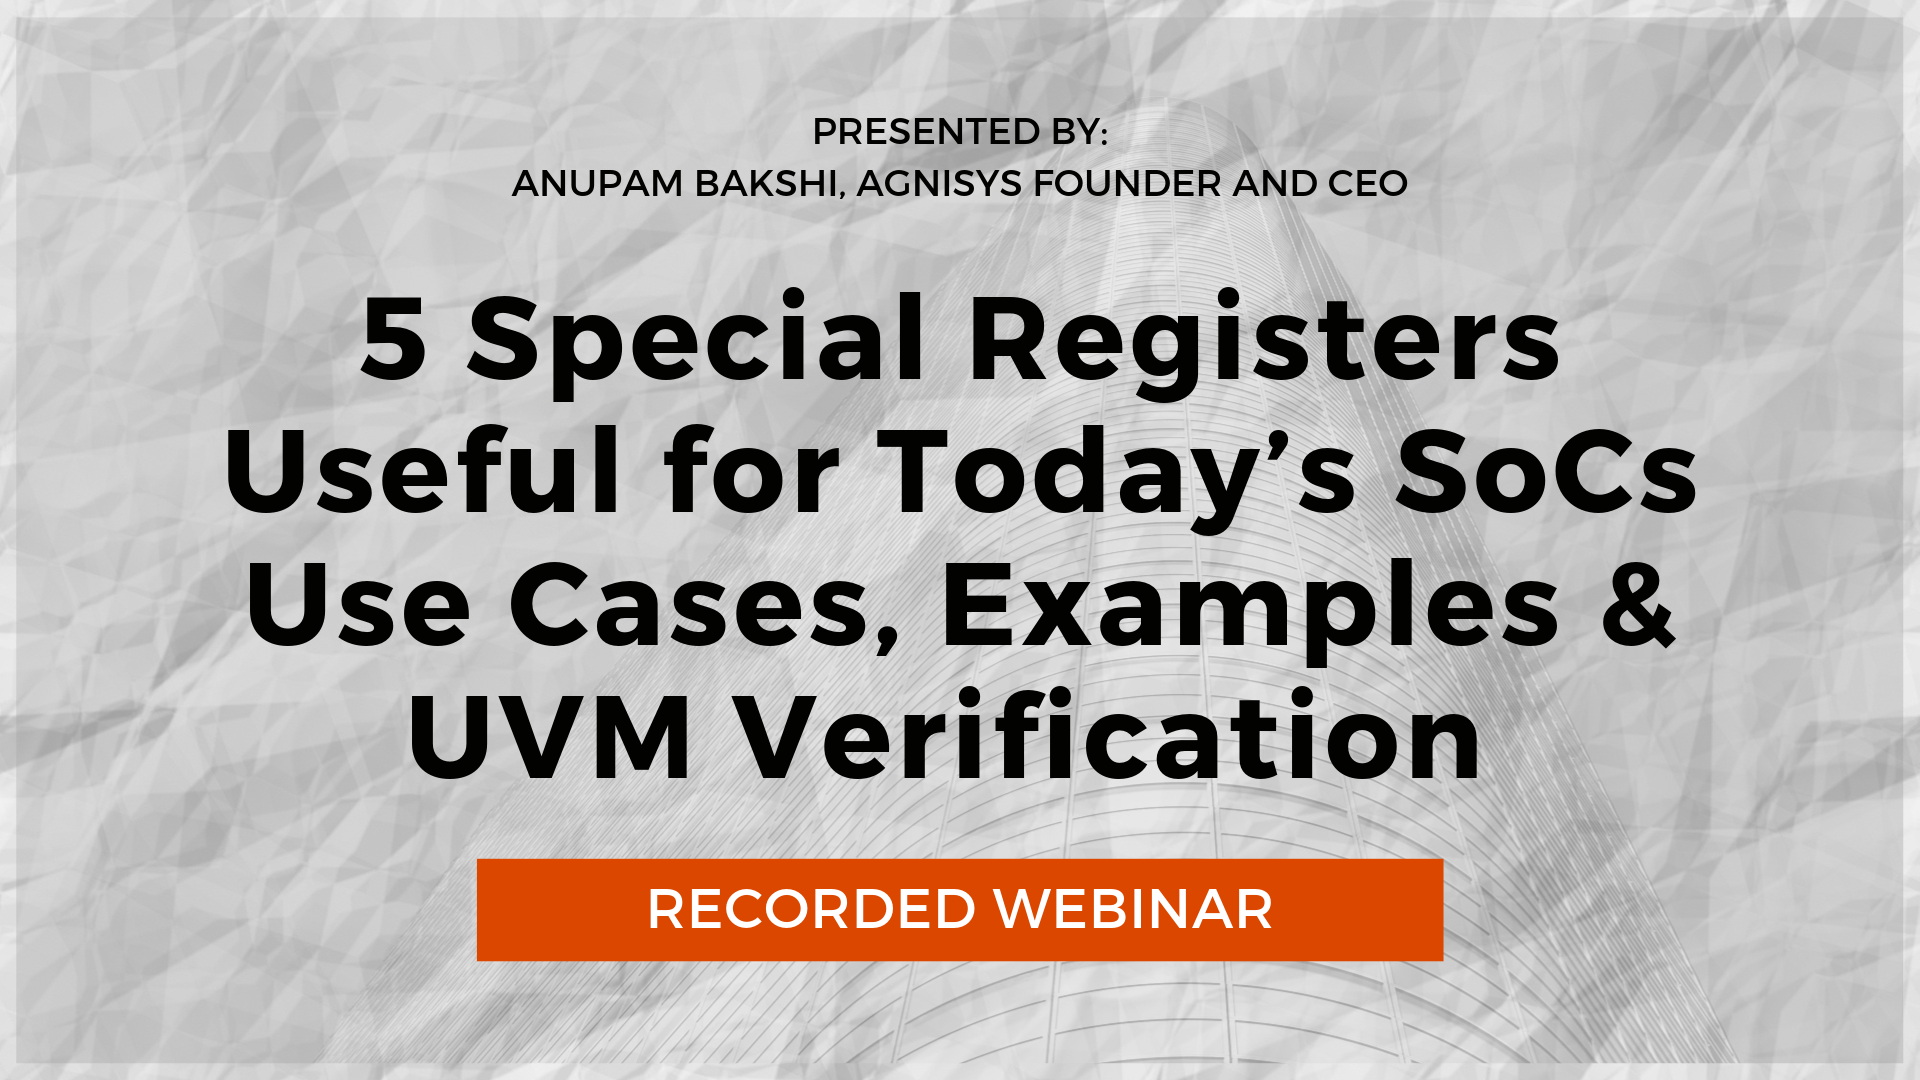 Recorded Webinar 5 Special Registers Useful for Todays SoCs